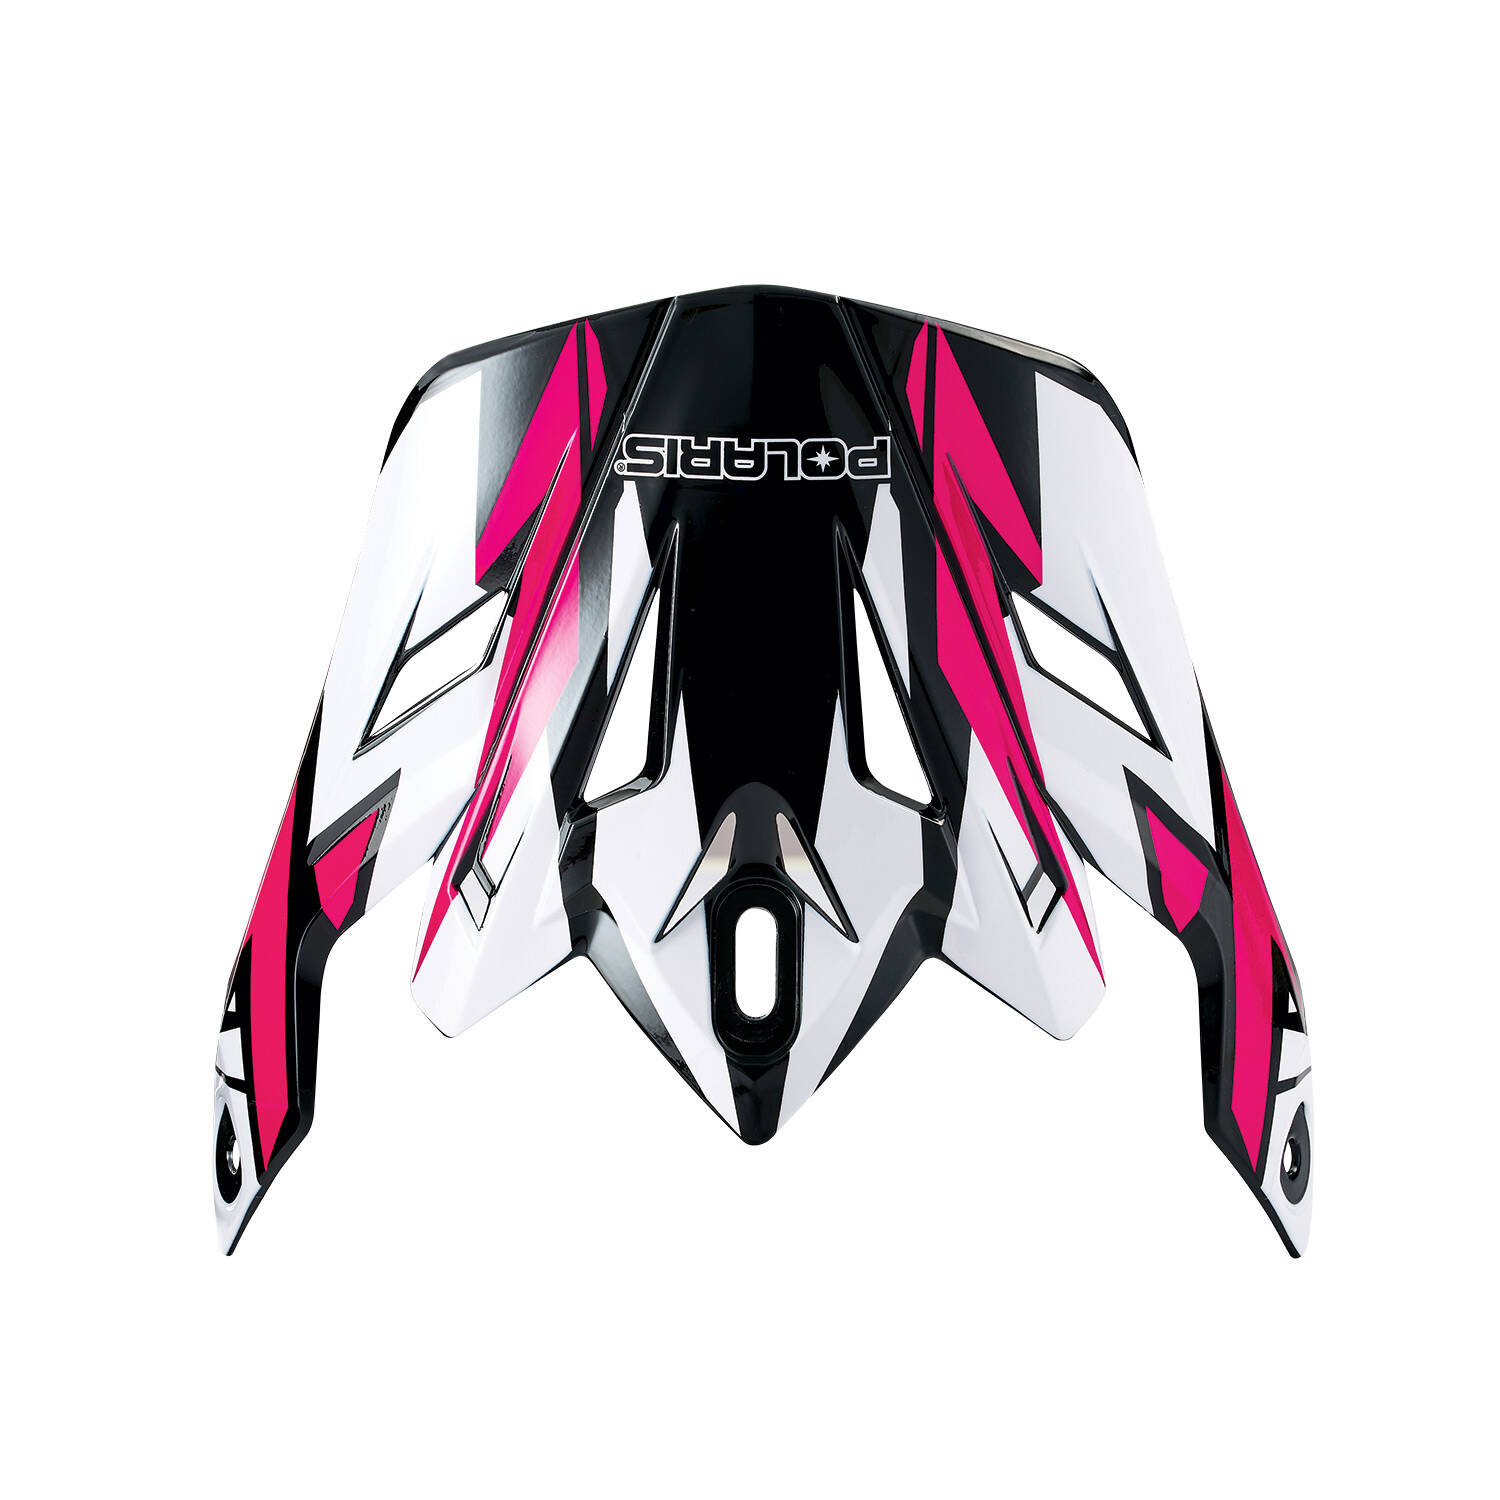 Replacement Visor for Youth Tenacity Helmet, Pink